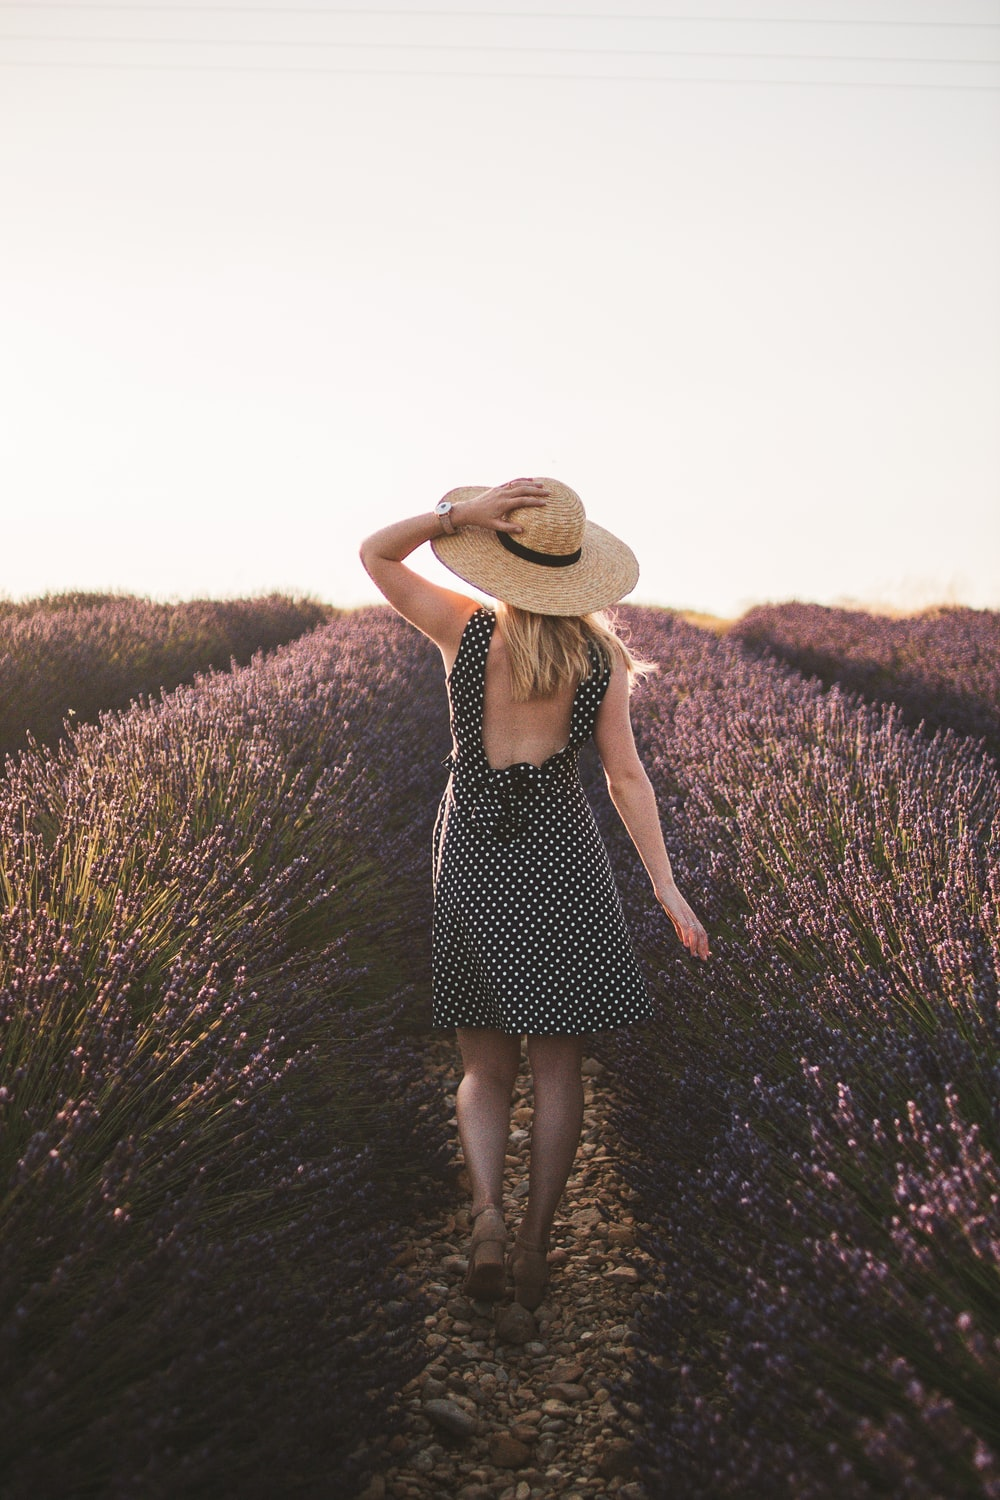 woman in black and white polka dot dress standing on purple flower field during daytime